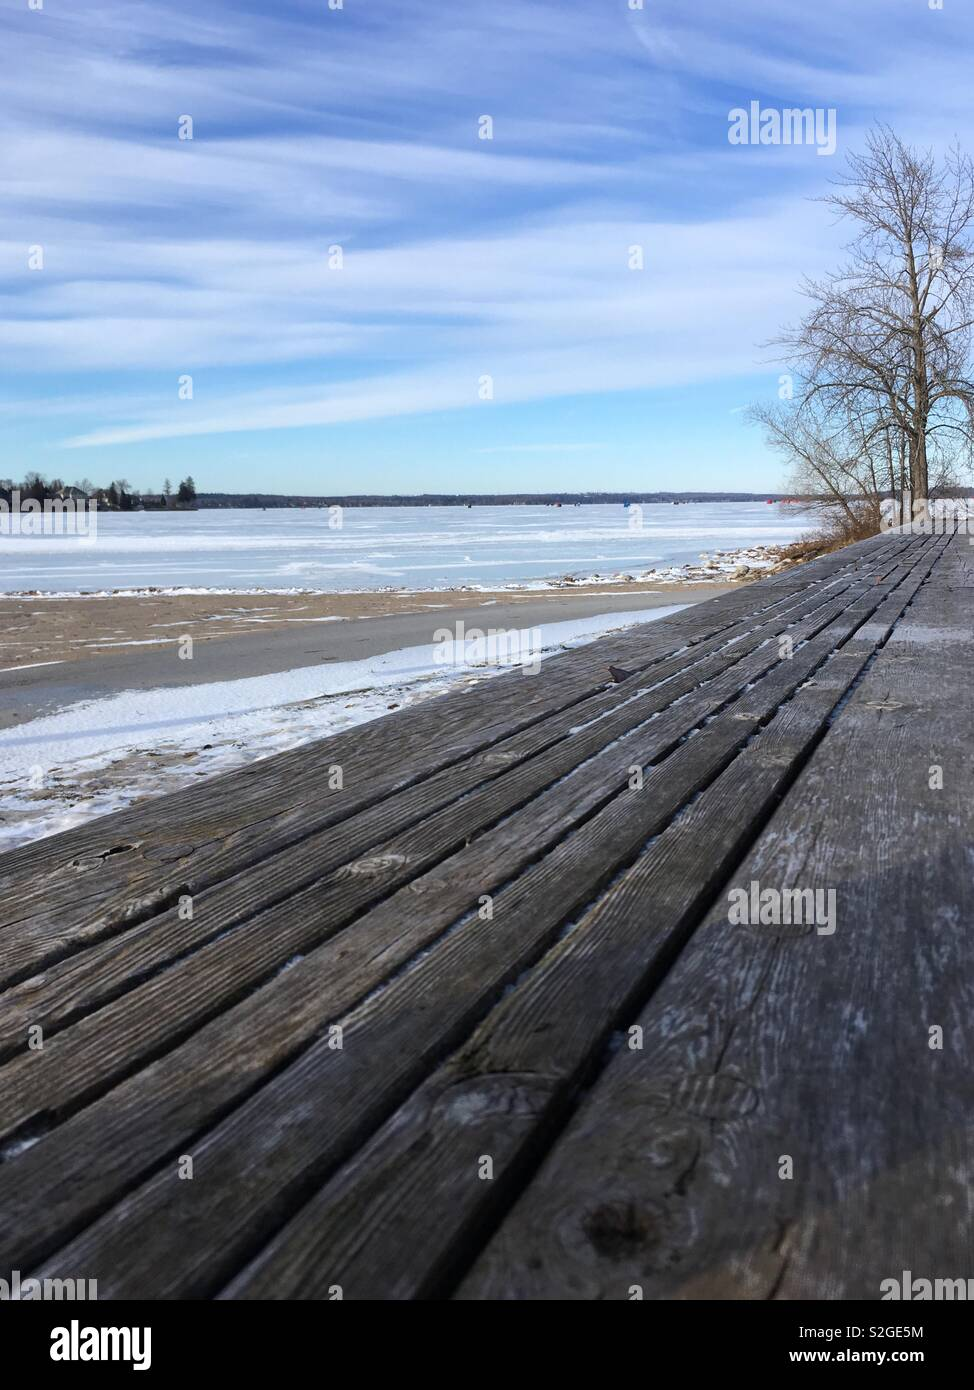 Winter's beach, frozen lake with ice shelters in it. Long wooden bench - Stock Image